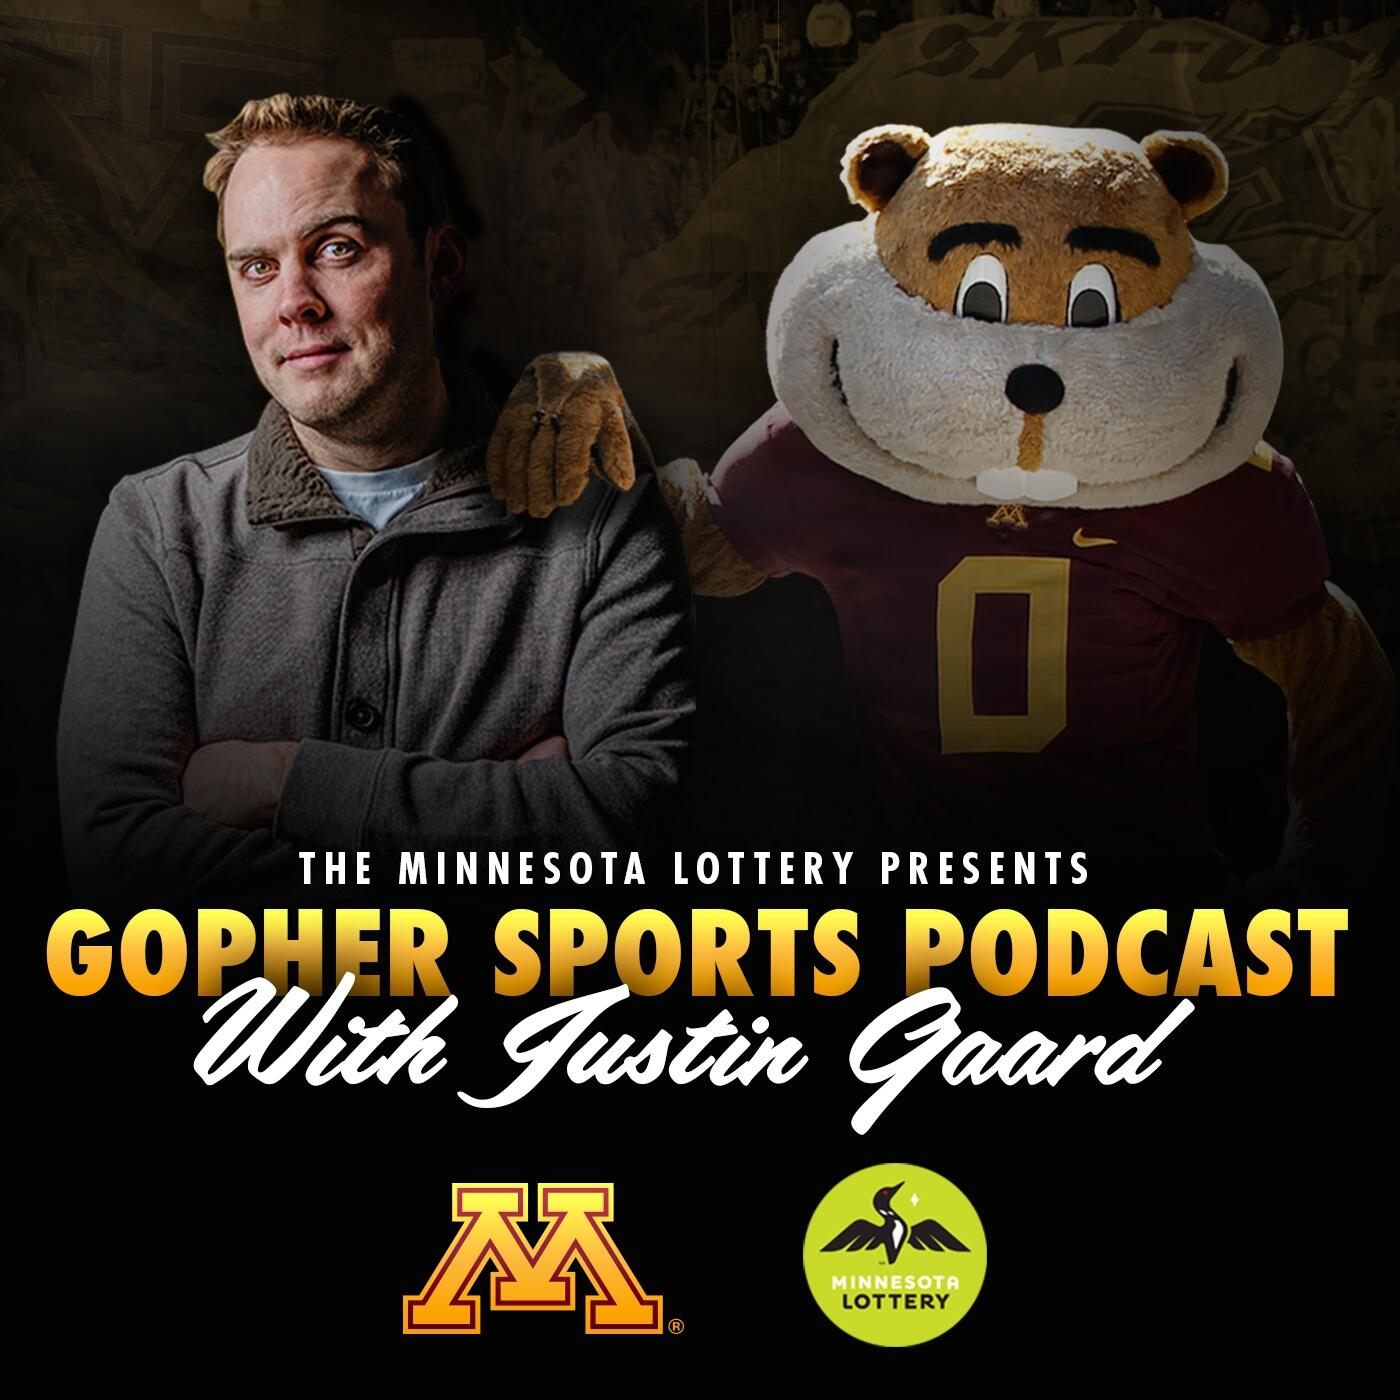 Gopher Sports Podcast